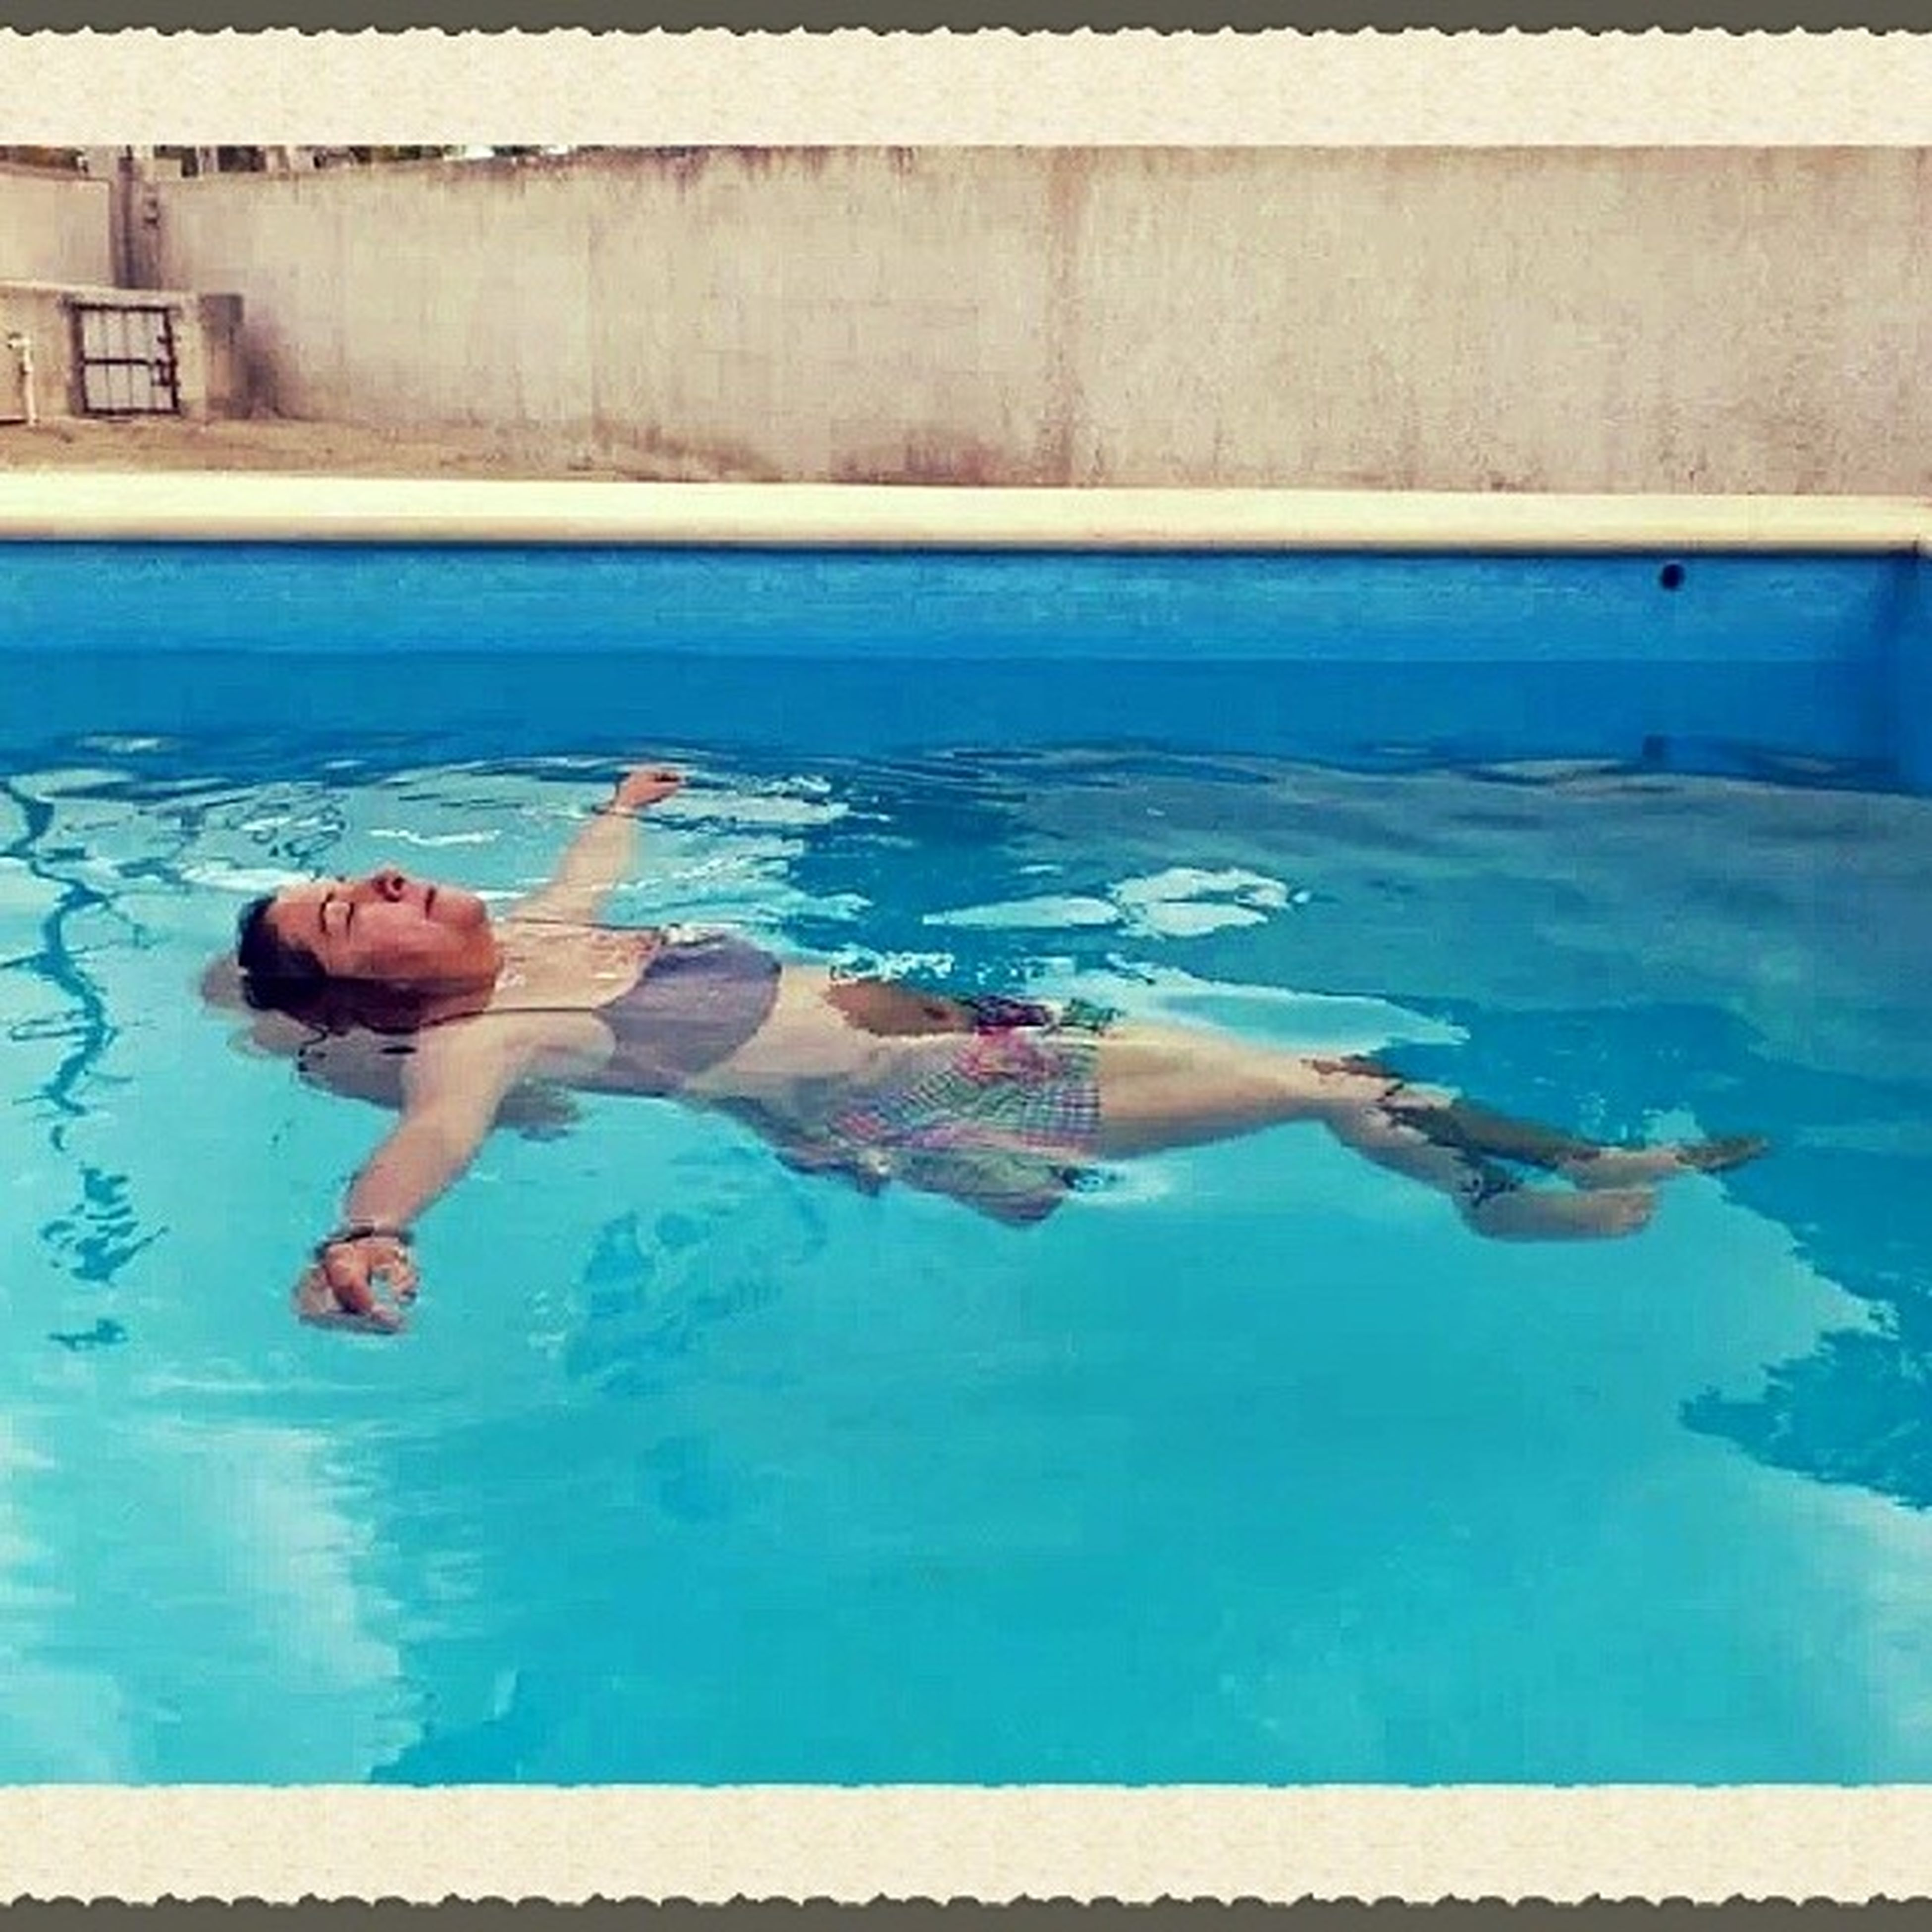 lifestyles, leisure activity, water, swimming pool, blue, full length, sea, standing, person, built structure, vacations, enjoyment, childhood, boys, architecture, turquoise colored